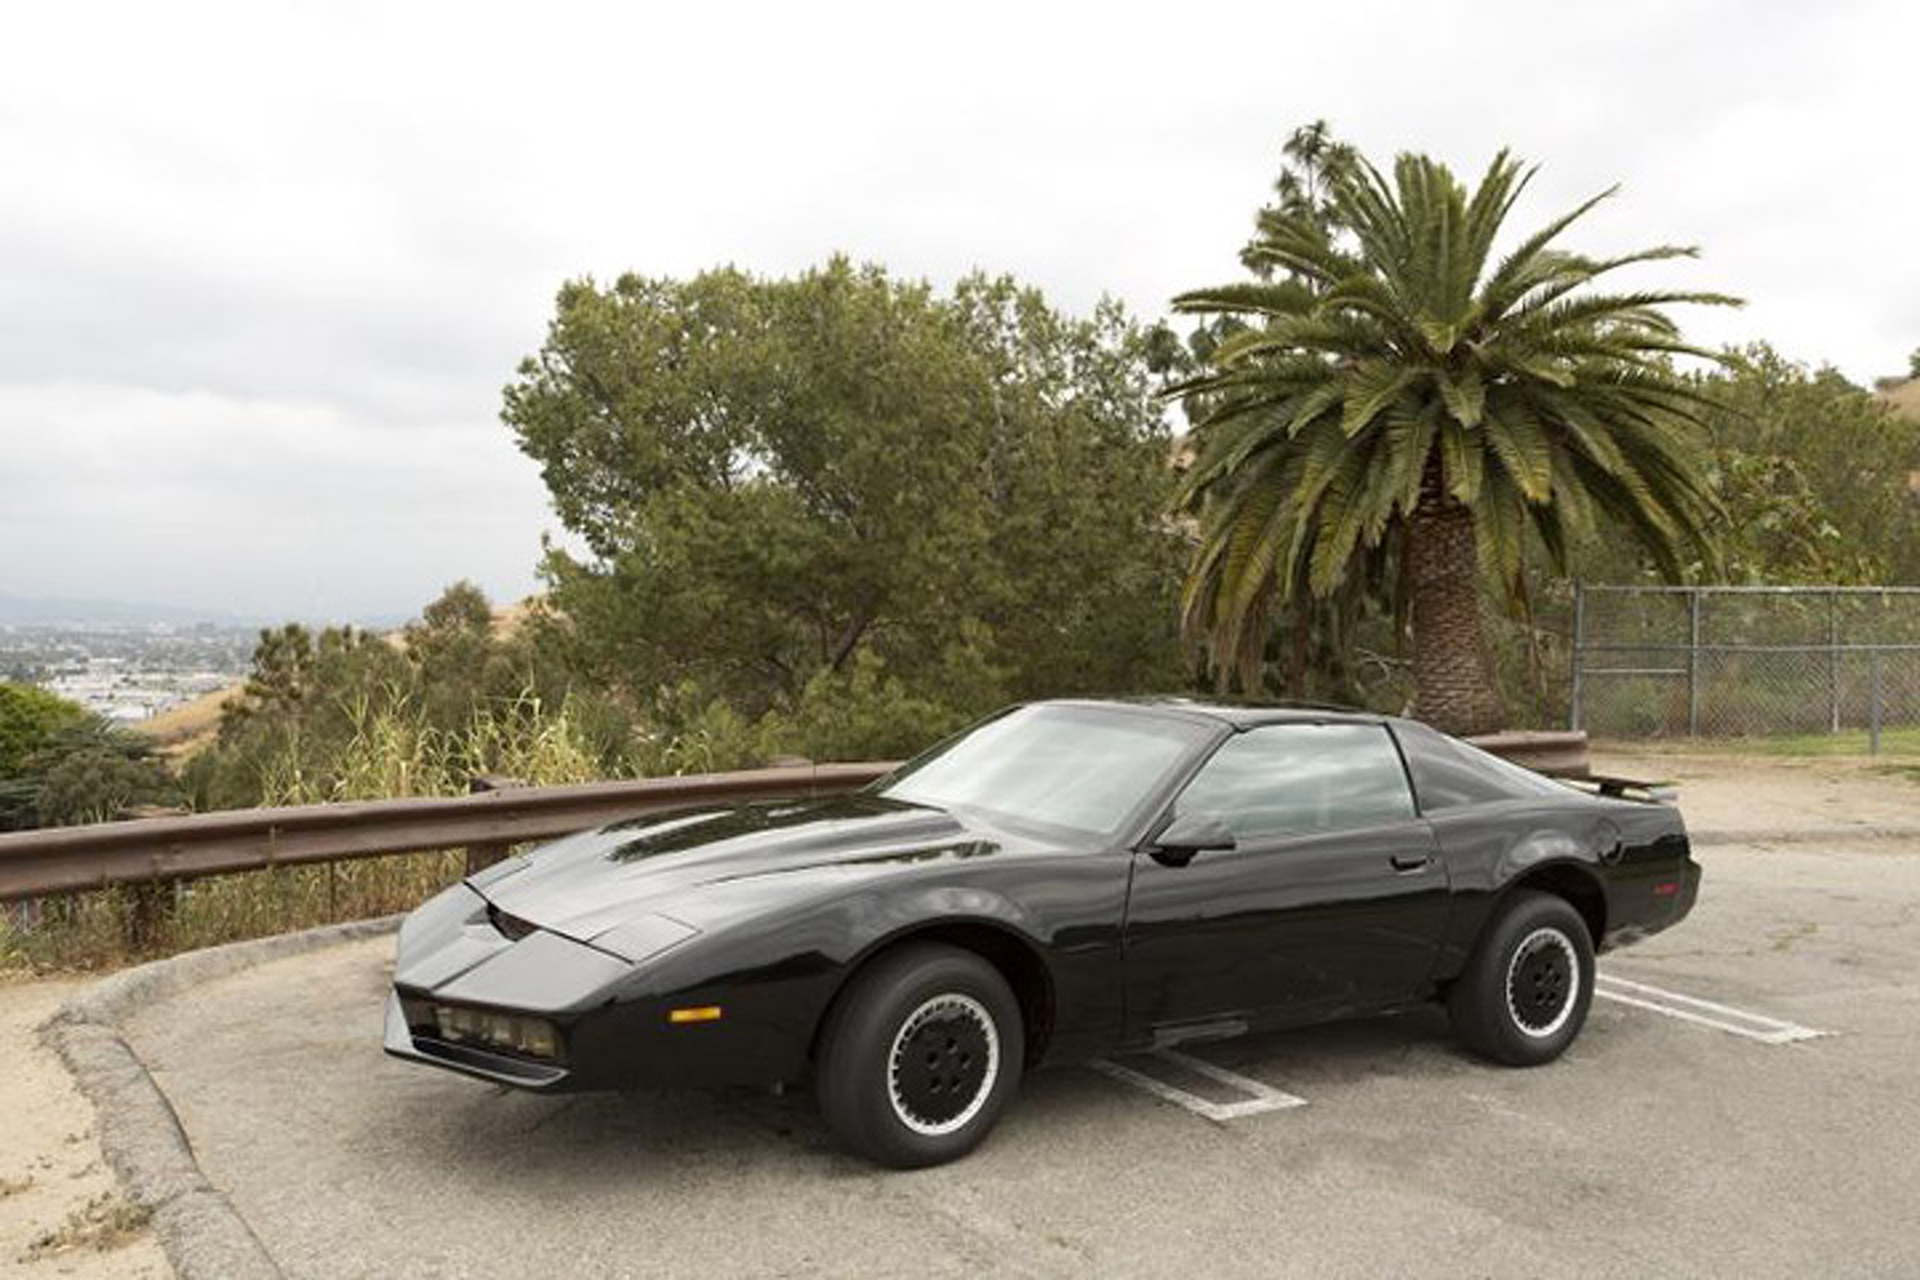 Buy This Set-Used 'Knight Rider' Trans Am and Be Just Like